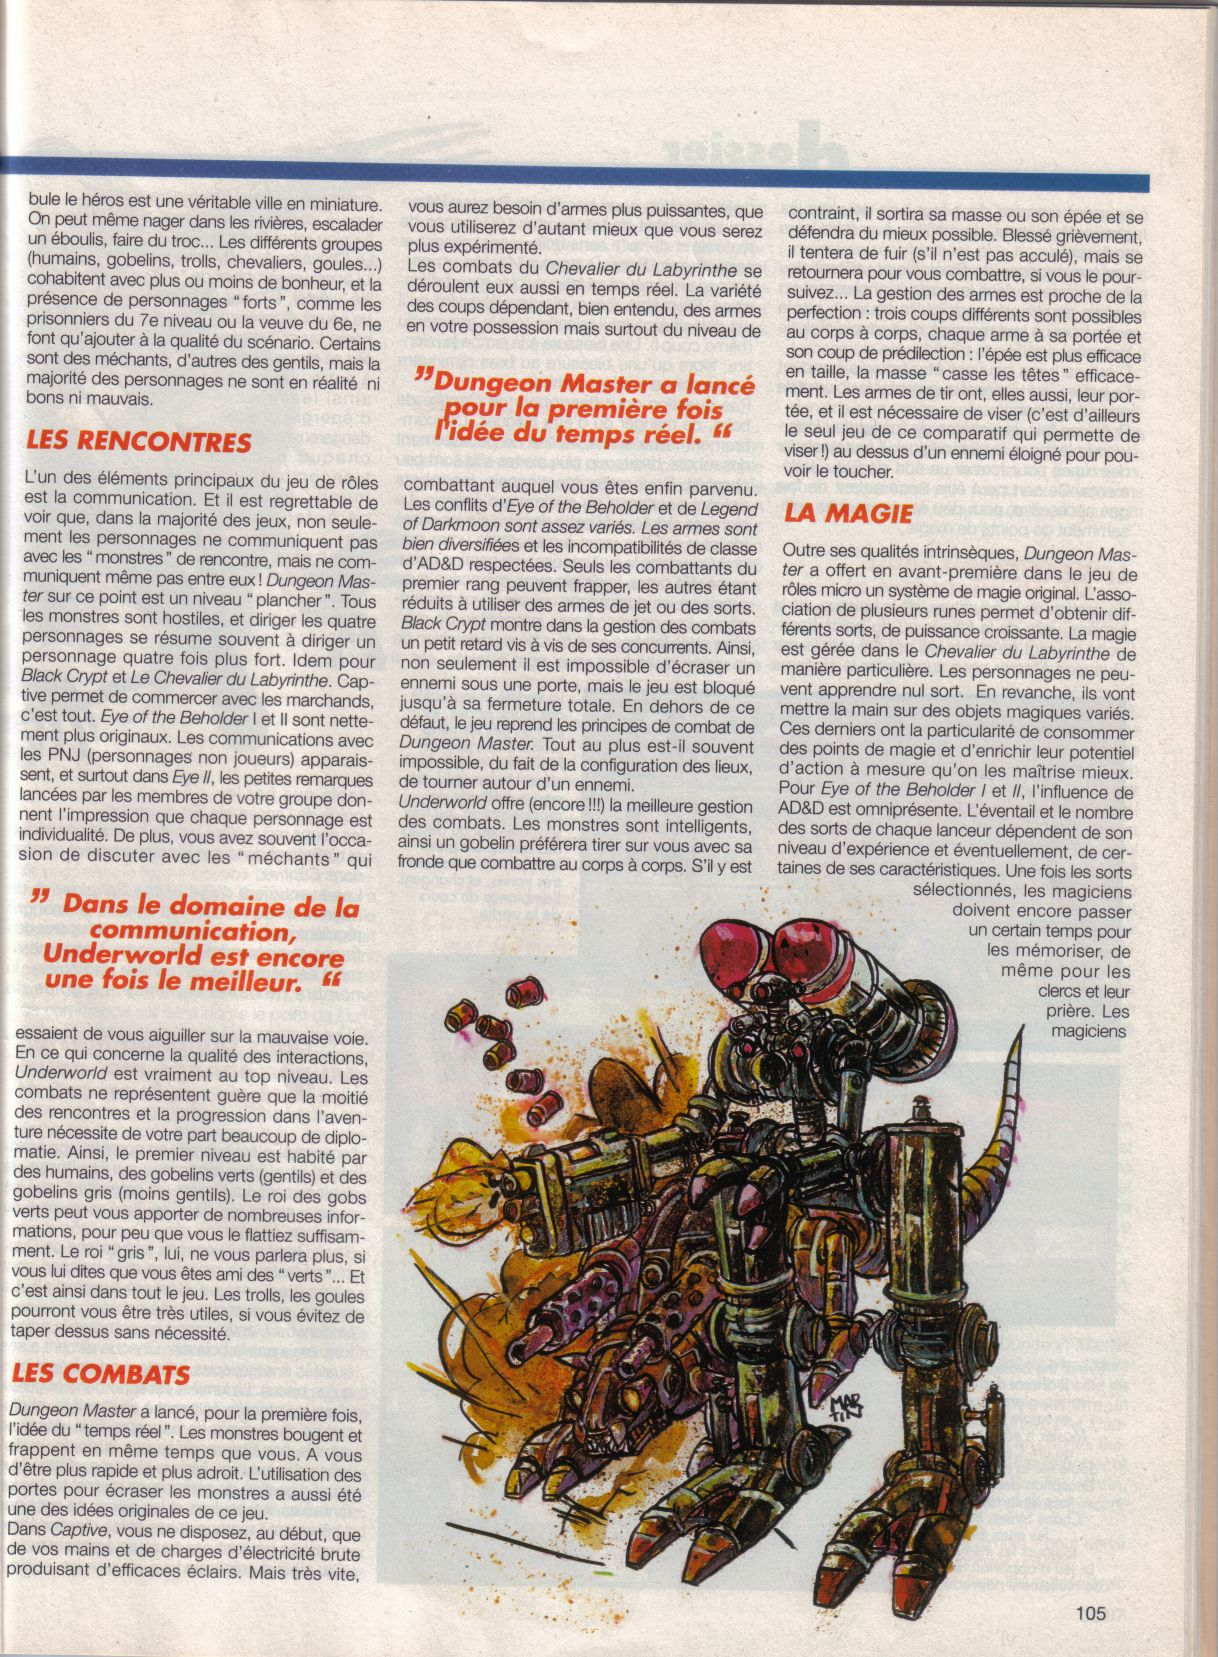 Dungeon Master Article published in French magazine 'Tilt', Issue #105, September 1992, Page 105